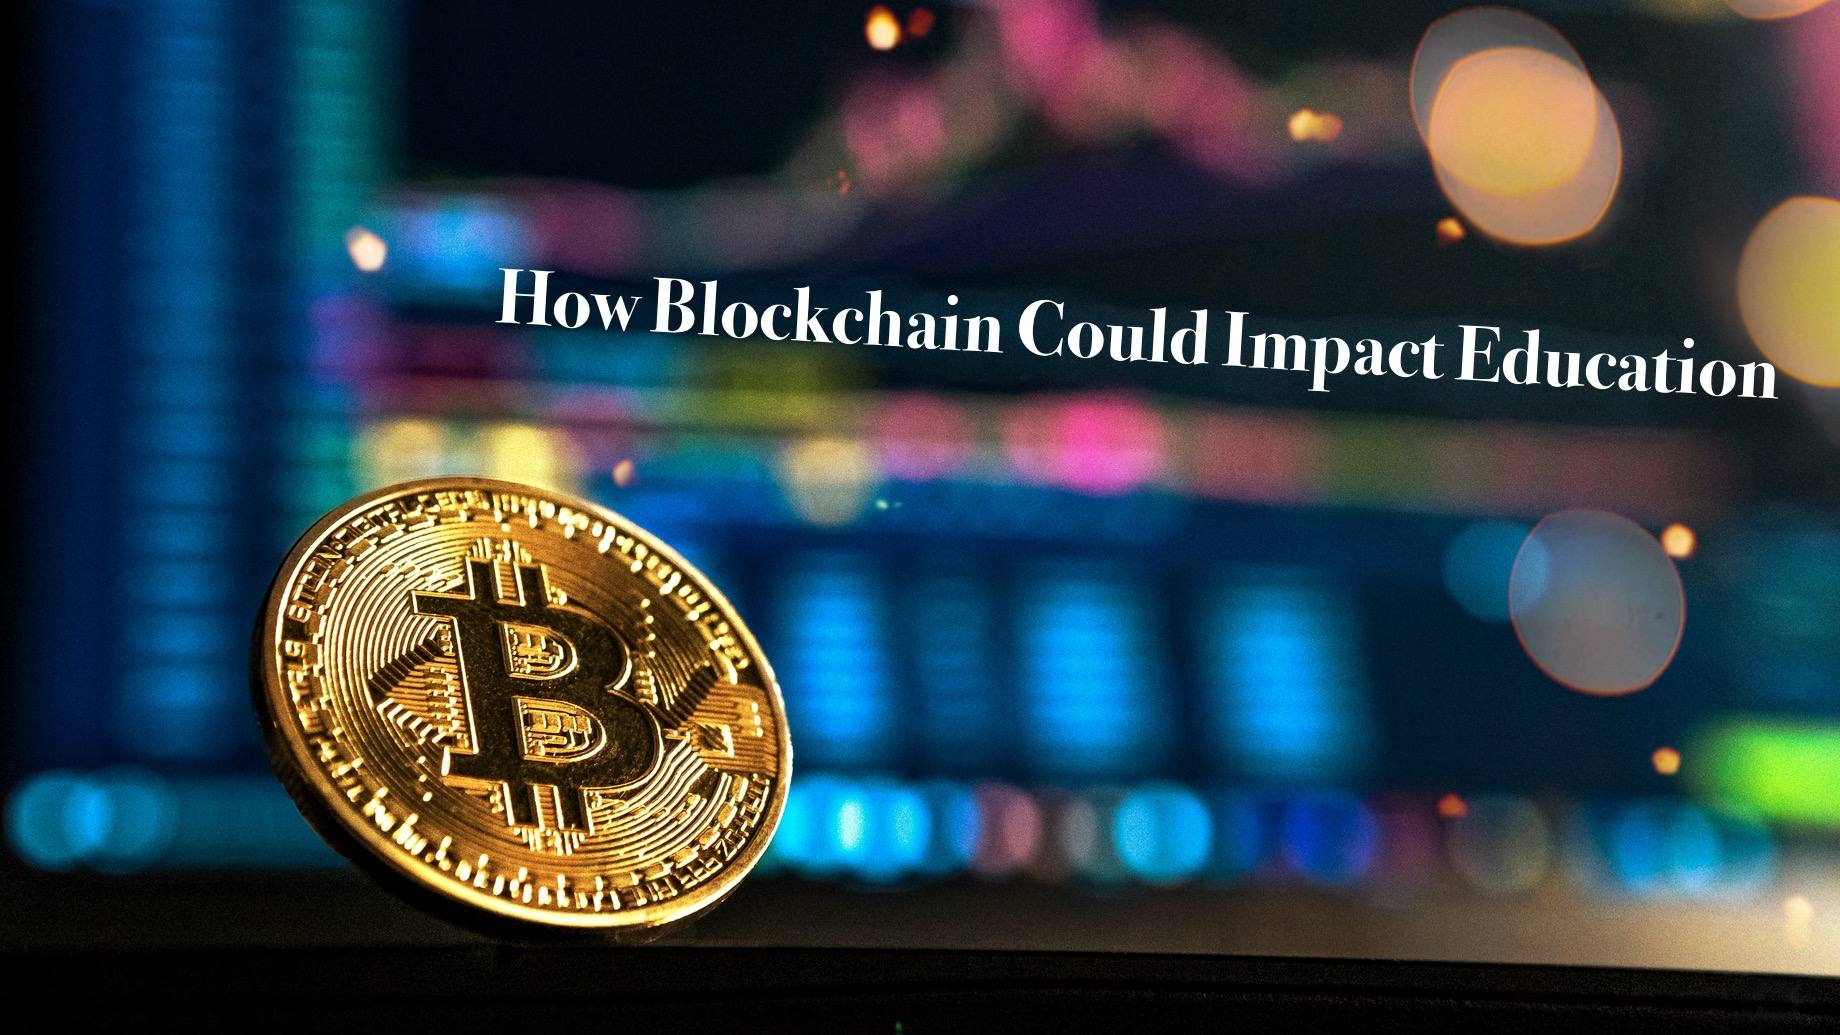 How Blockchain Could Impact Education